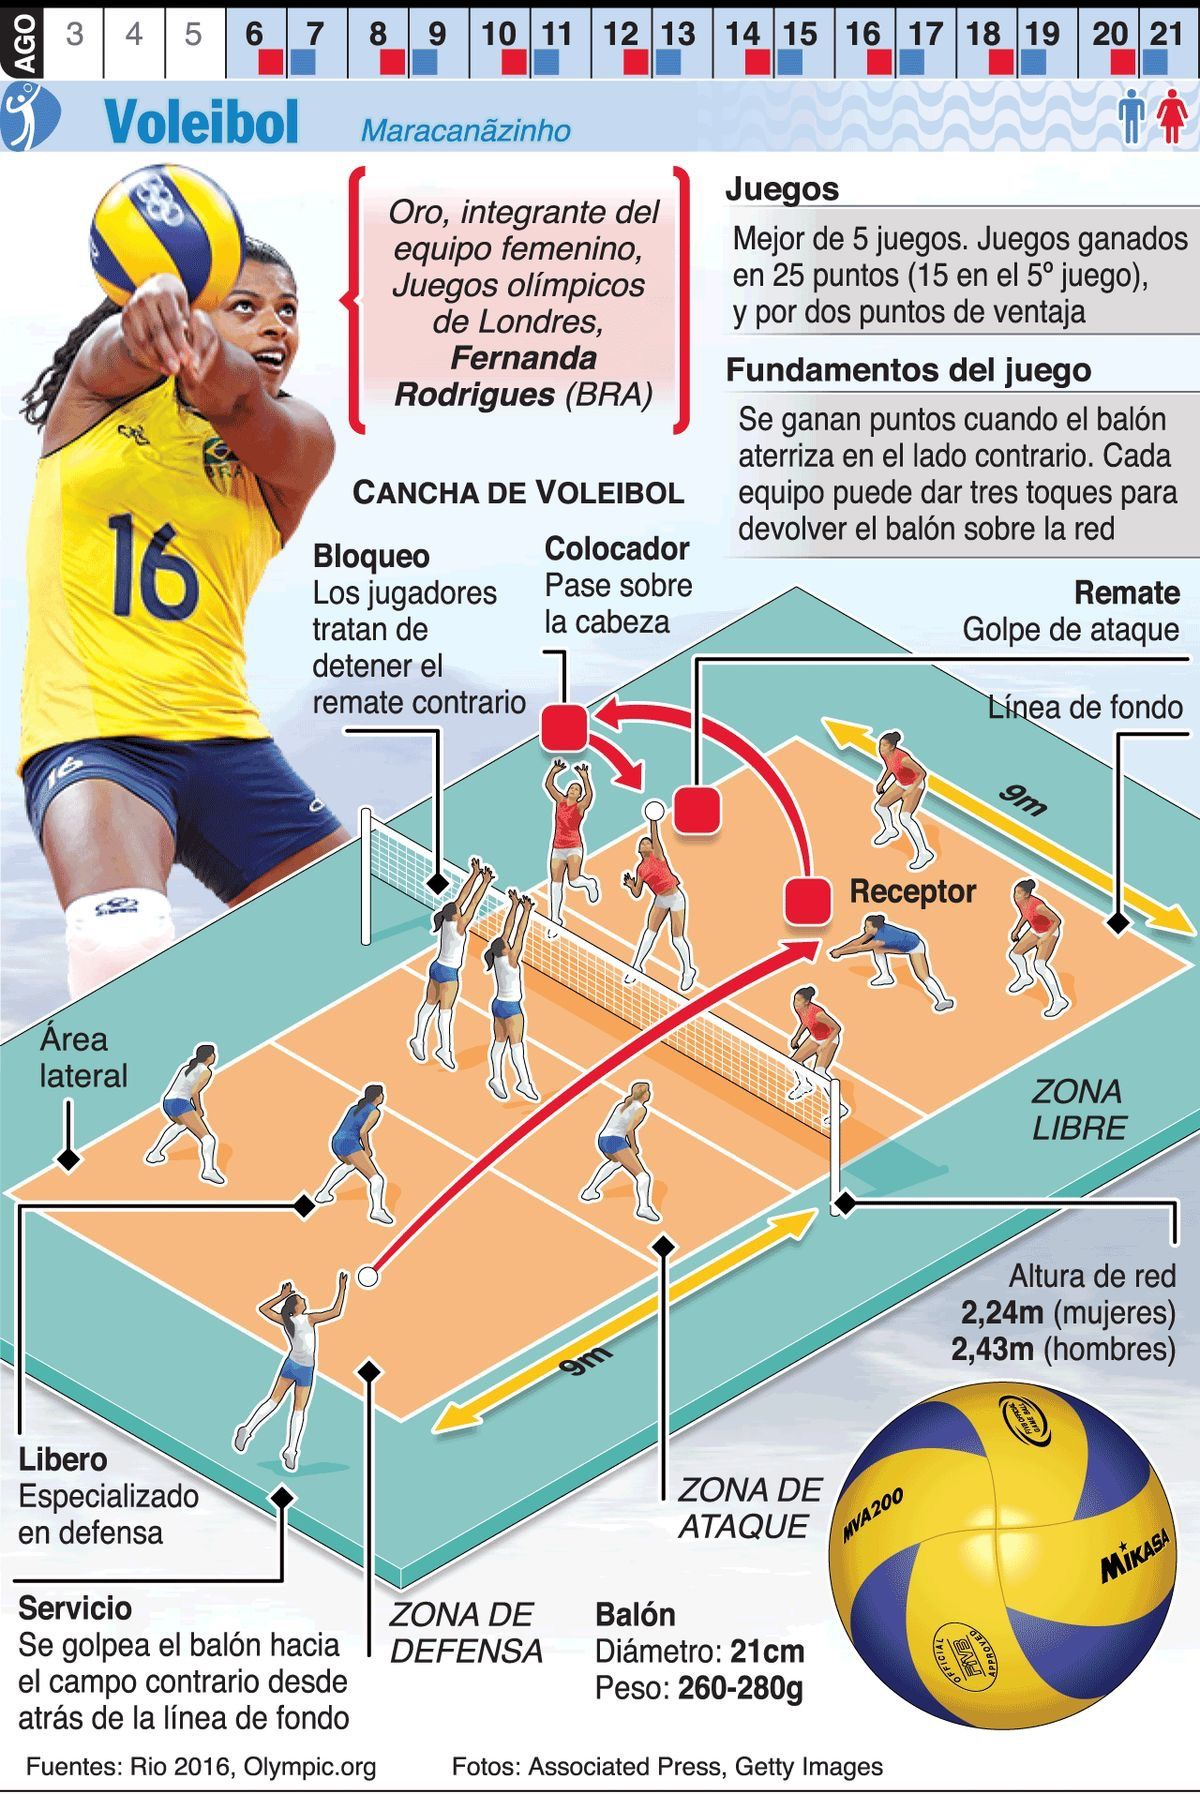 Pin By Zyad Naoumi On Educacion Fisica Volleyball Workouts Coaching Volleyball Volleyball Skills